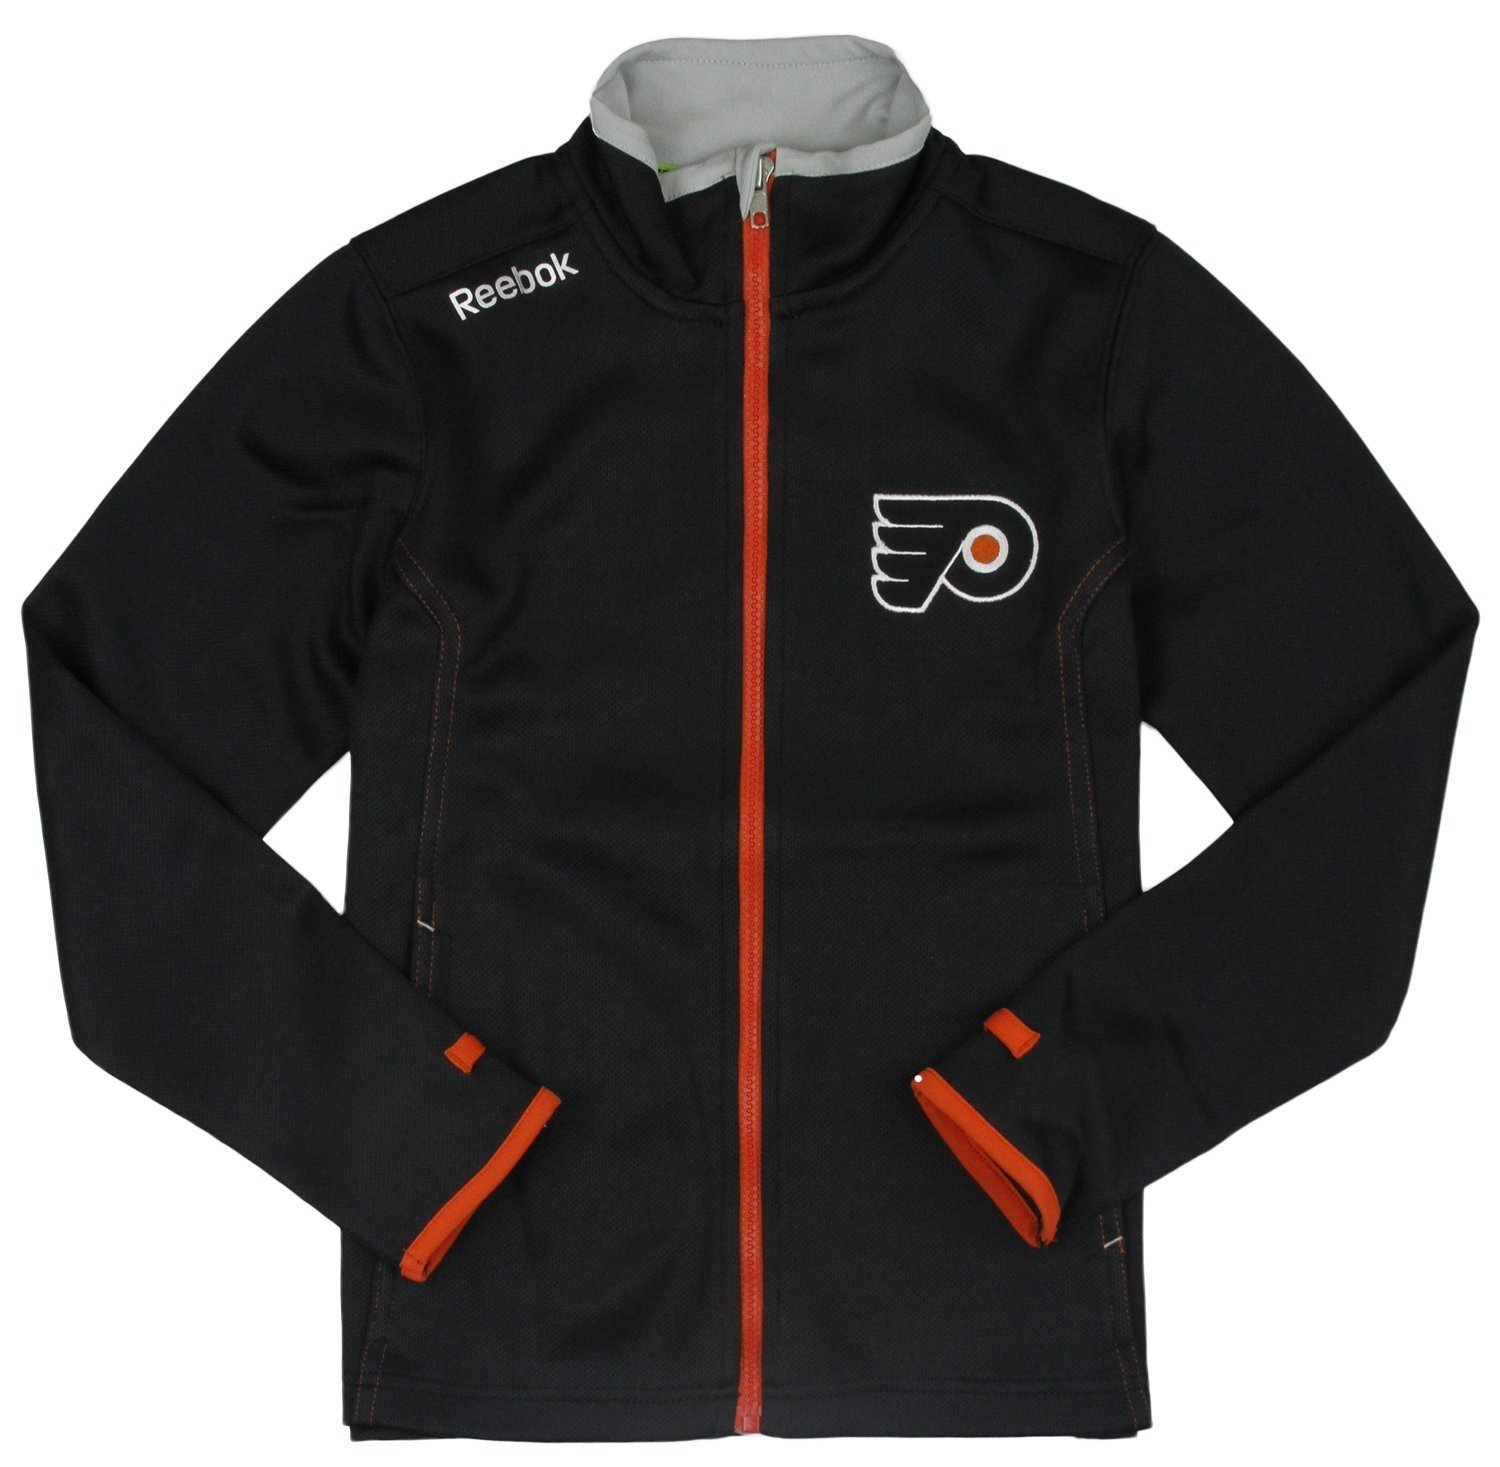 Philadelphia Flyers NHL Big Boys Full Zip Warm Up Jacket, Black Reebok